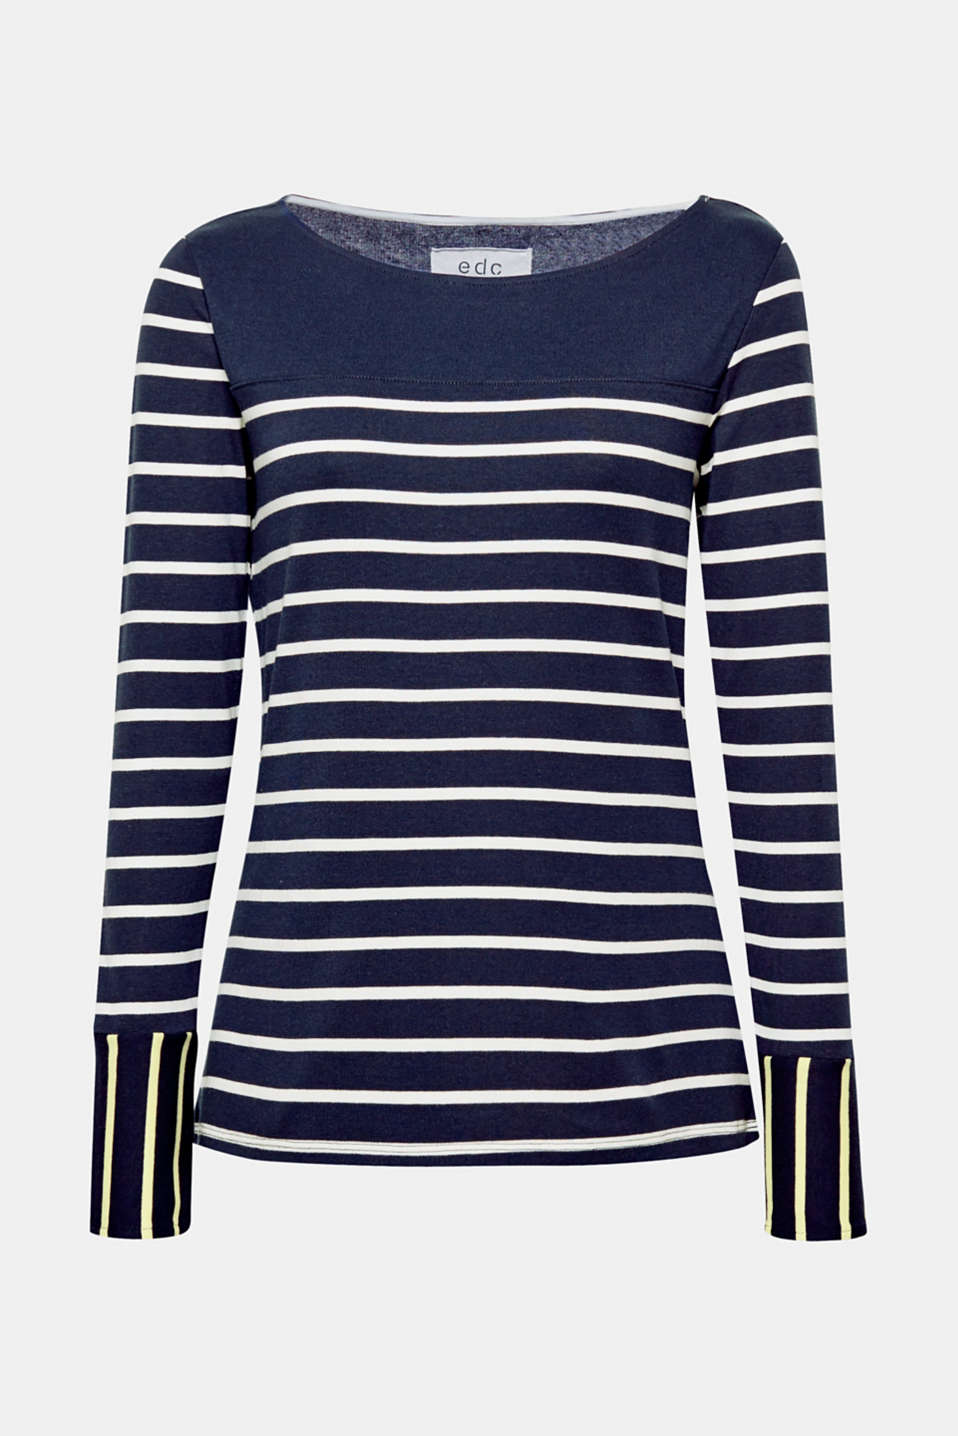 With button-fastening, contrasting sleeve ends, this ribbed jersey top features an unexpected nautical striped look.